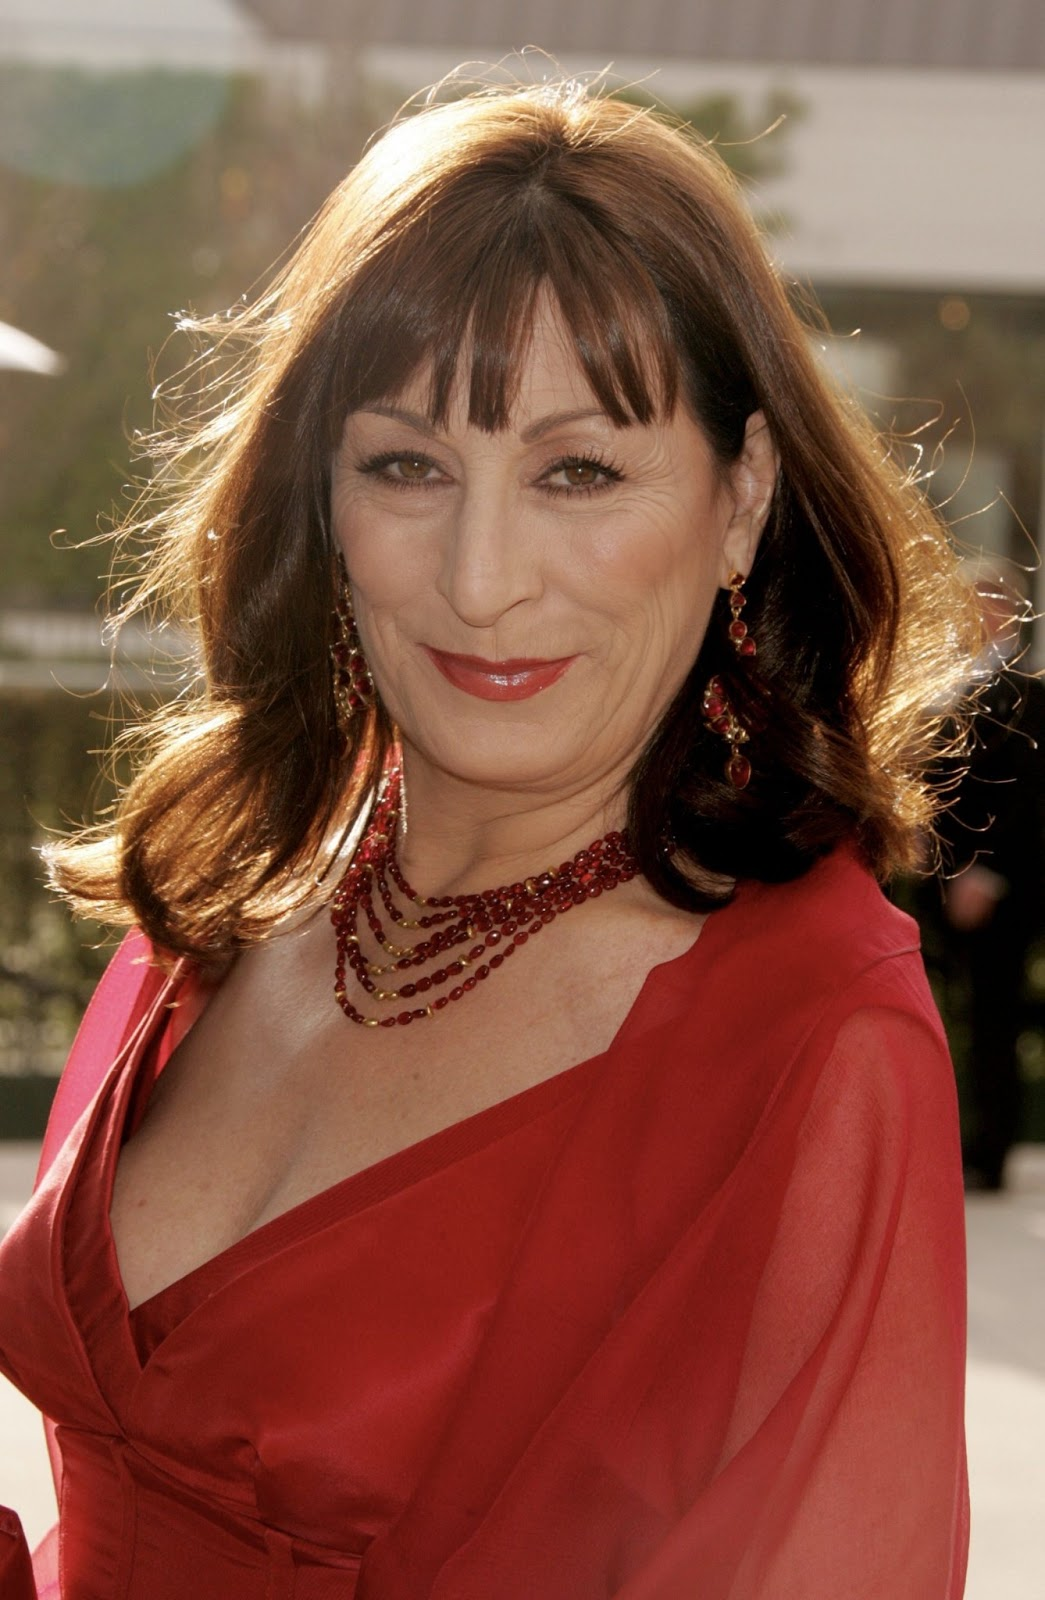 huston girls 59 rows anjelica huston (/ ˈ h juː s t ən / born july 8, 1951) is an american actress, director, and former fashion modelhuston became the third generation of her family to win an academy award, when she won best supporting actress for her performance in 1985's prizzi's honor, joining her father, director john huston, and grandfather, actor.